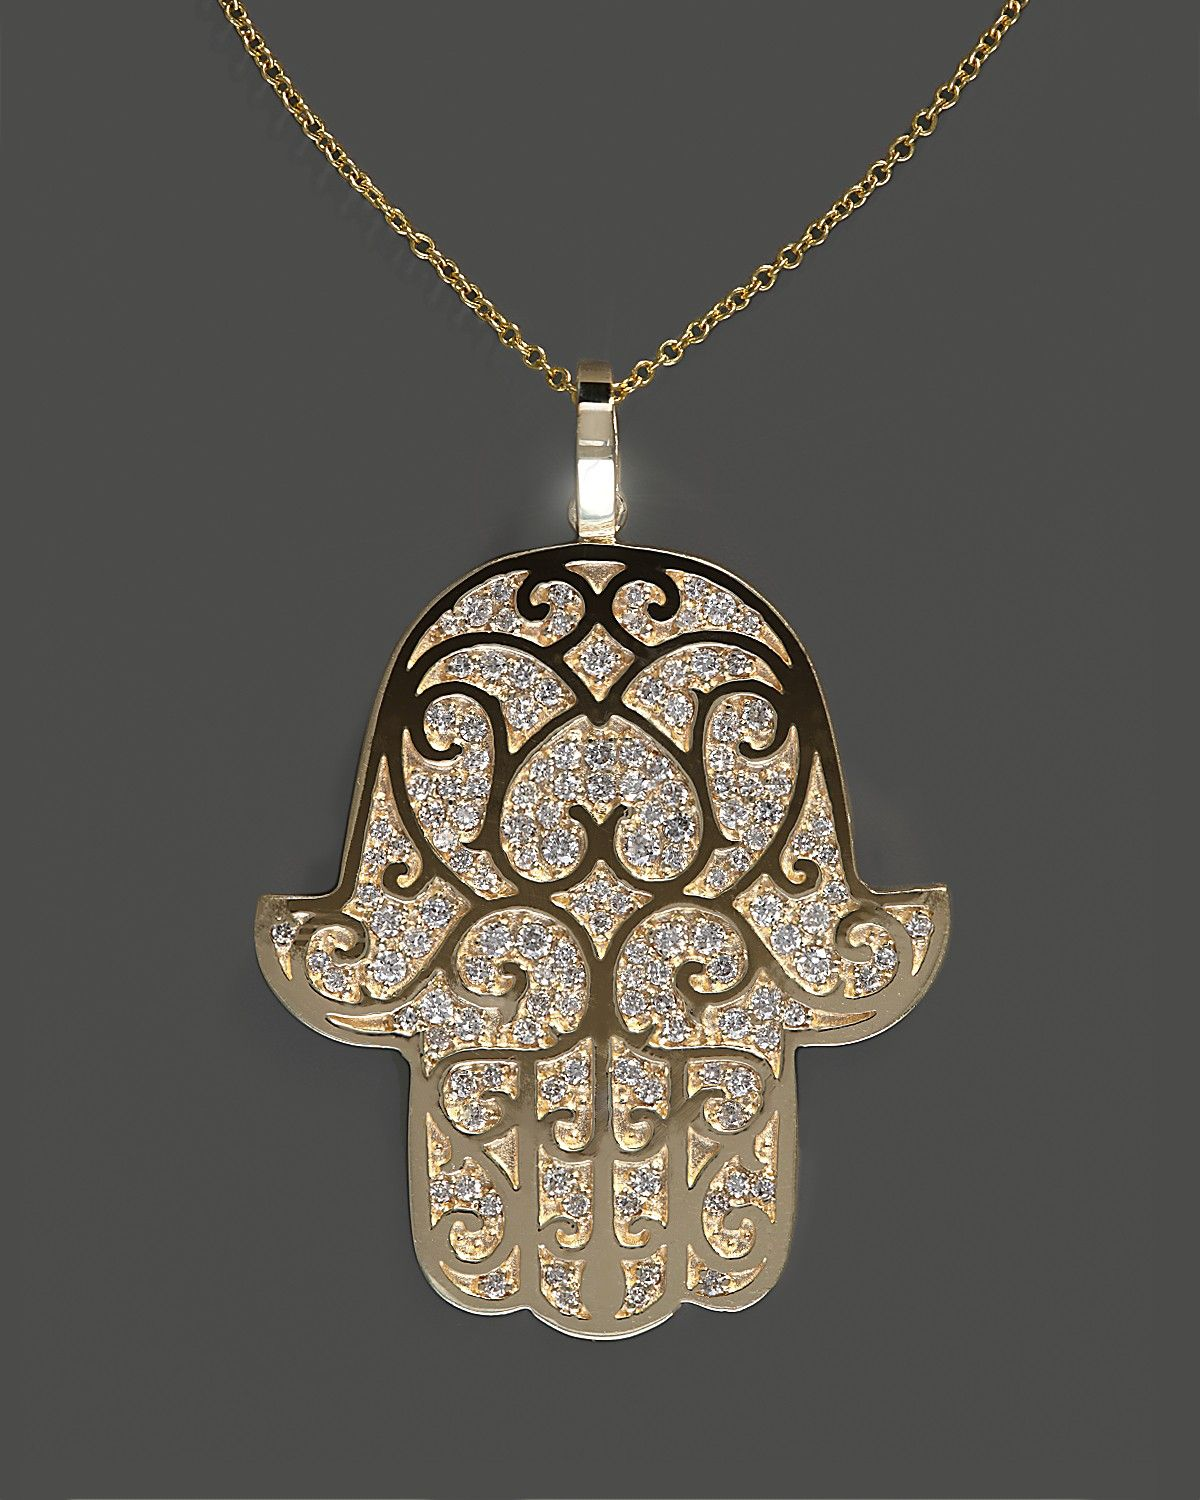 Diamond hamsa pendant necklace in 14k yellow gold 90 ct tw 18 diamond hamsa pendant necklace in 14k yellow gold 90 ct tw 18 mozeypictures Images